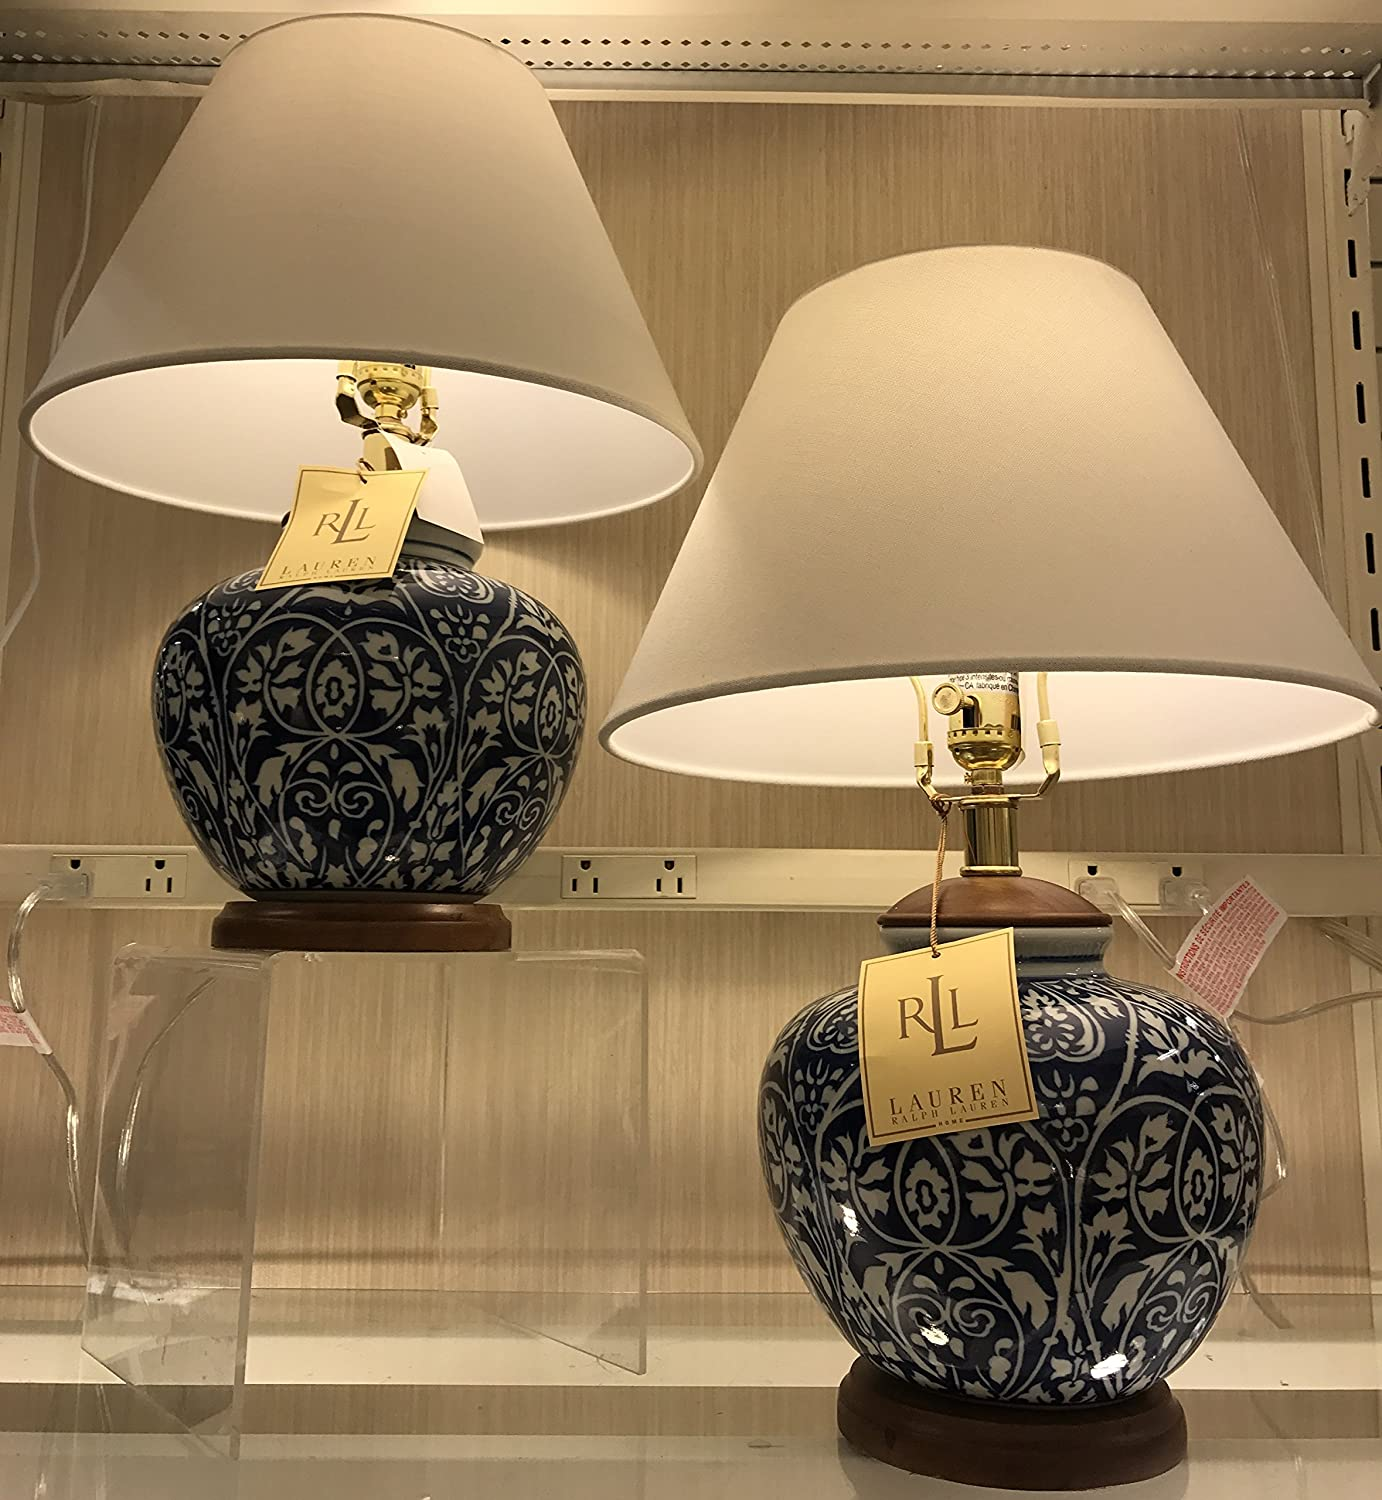 Pair Of Two (2), Ralph Lauren Round Ginger Jar Blue And White Floral Vine  Porcelain Ceramic Traditional Table Lamps With Silk Shades     Amazon.com